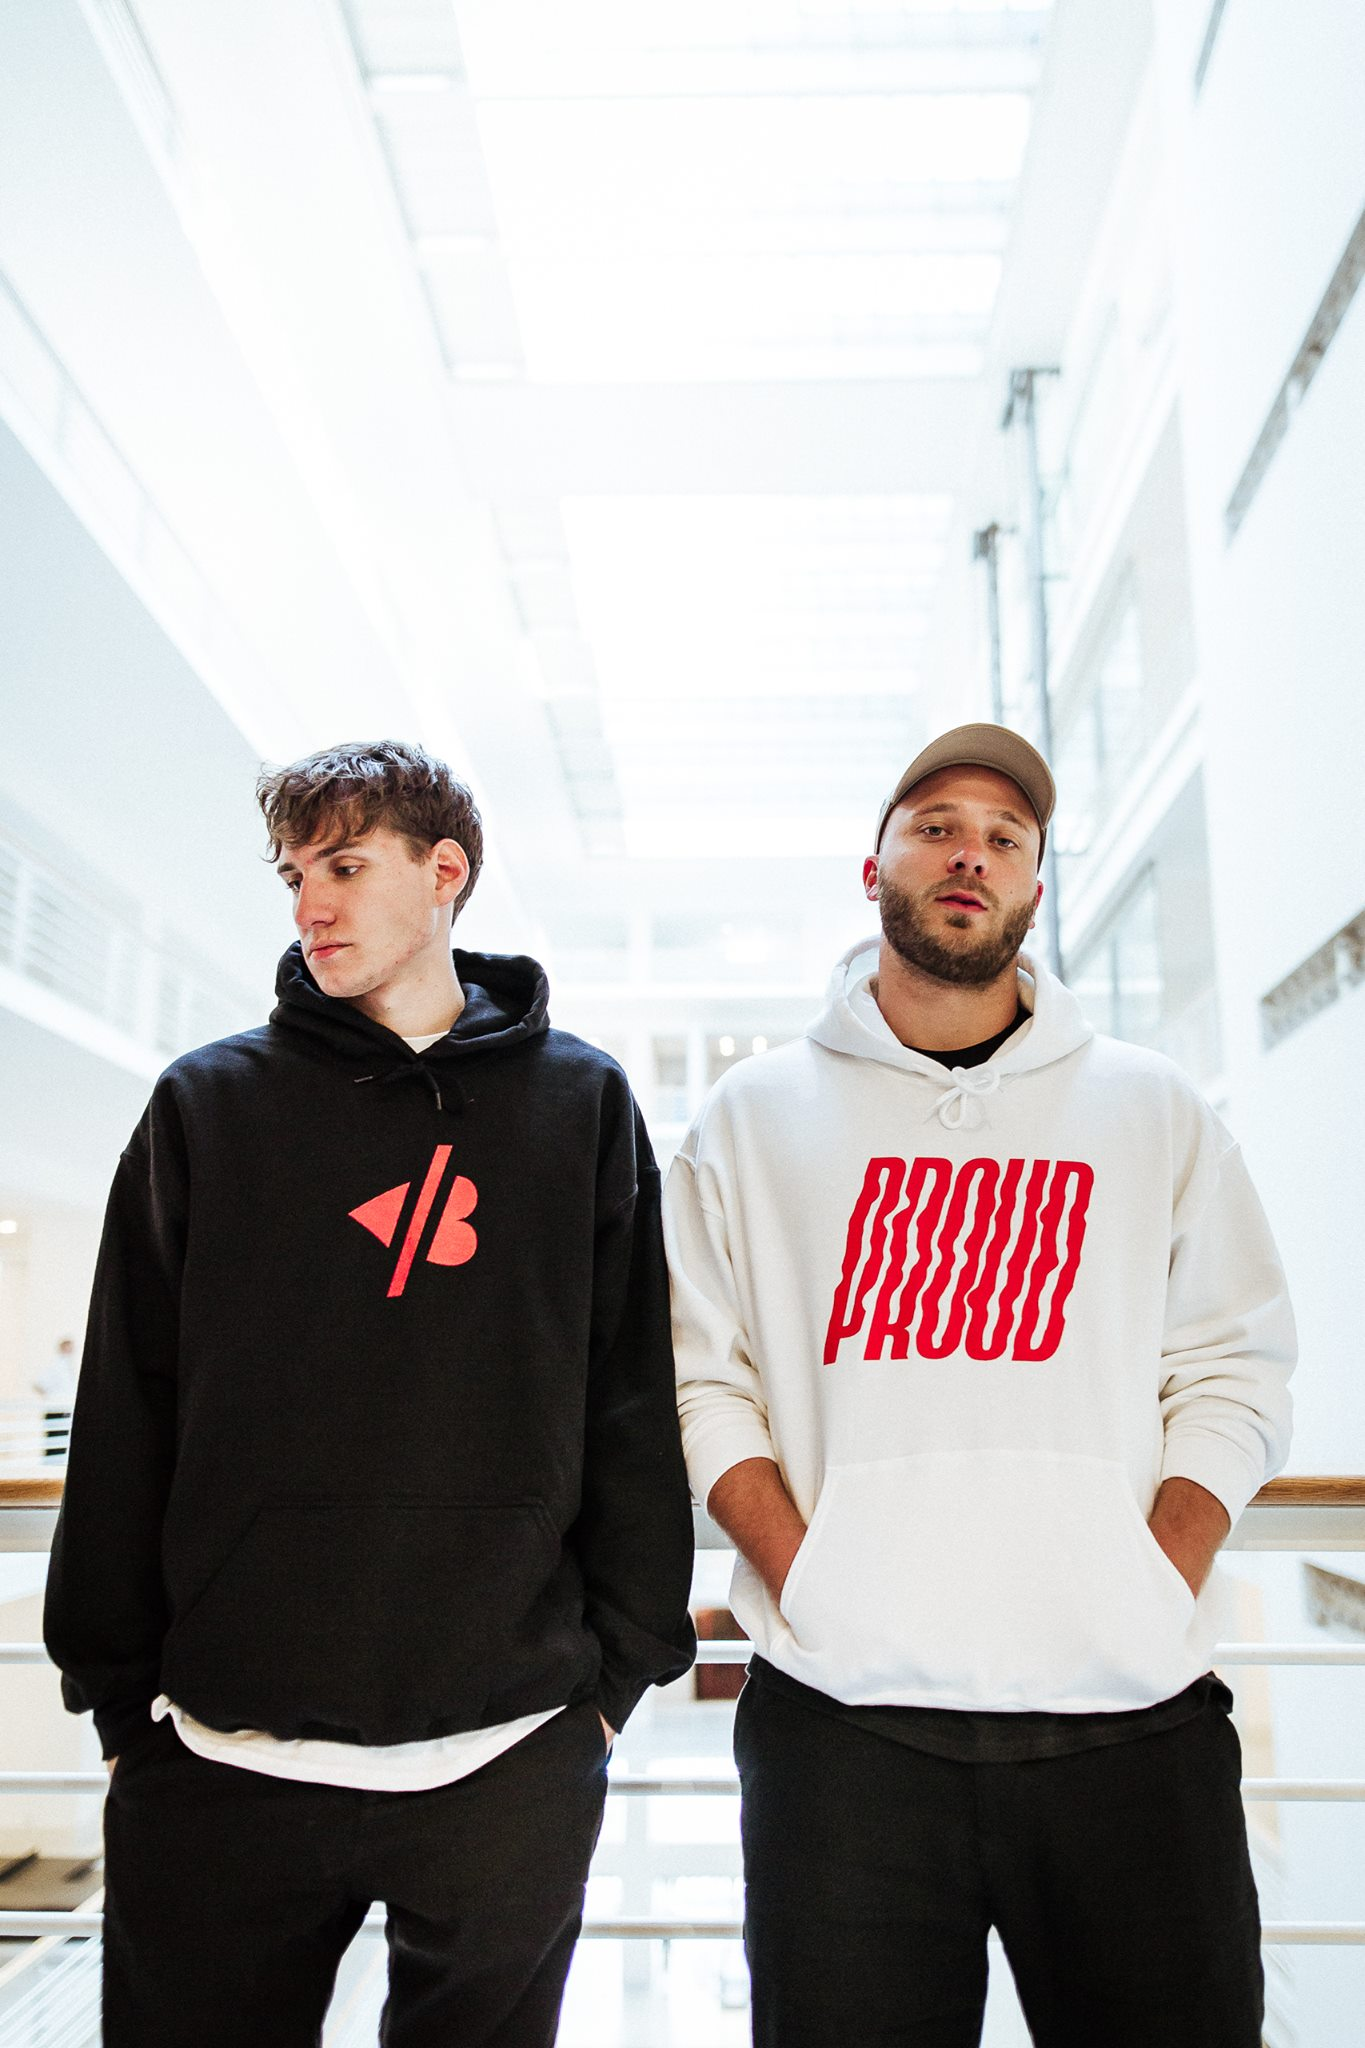 VR/Nobody Proud merch release